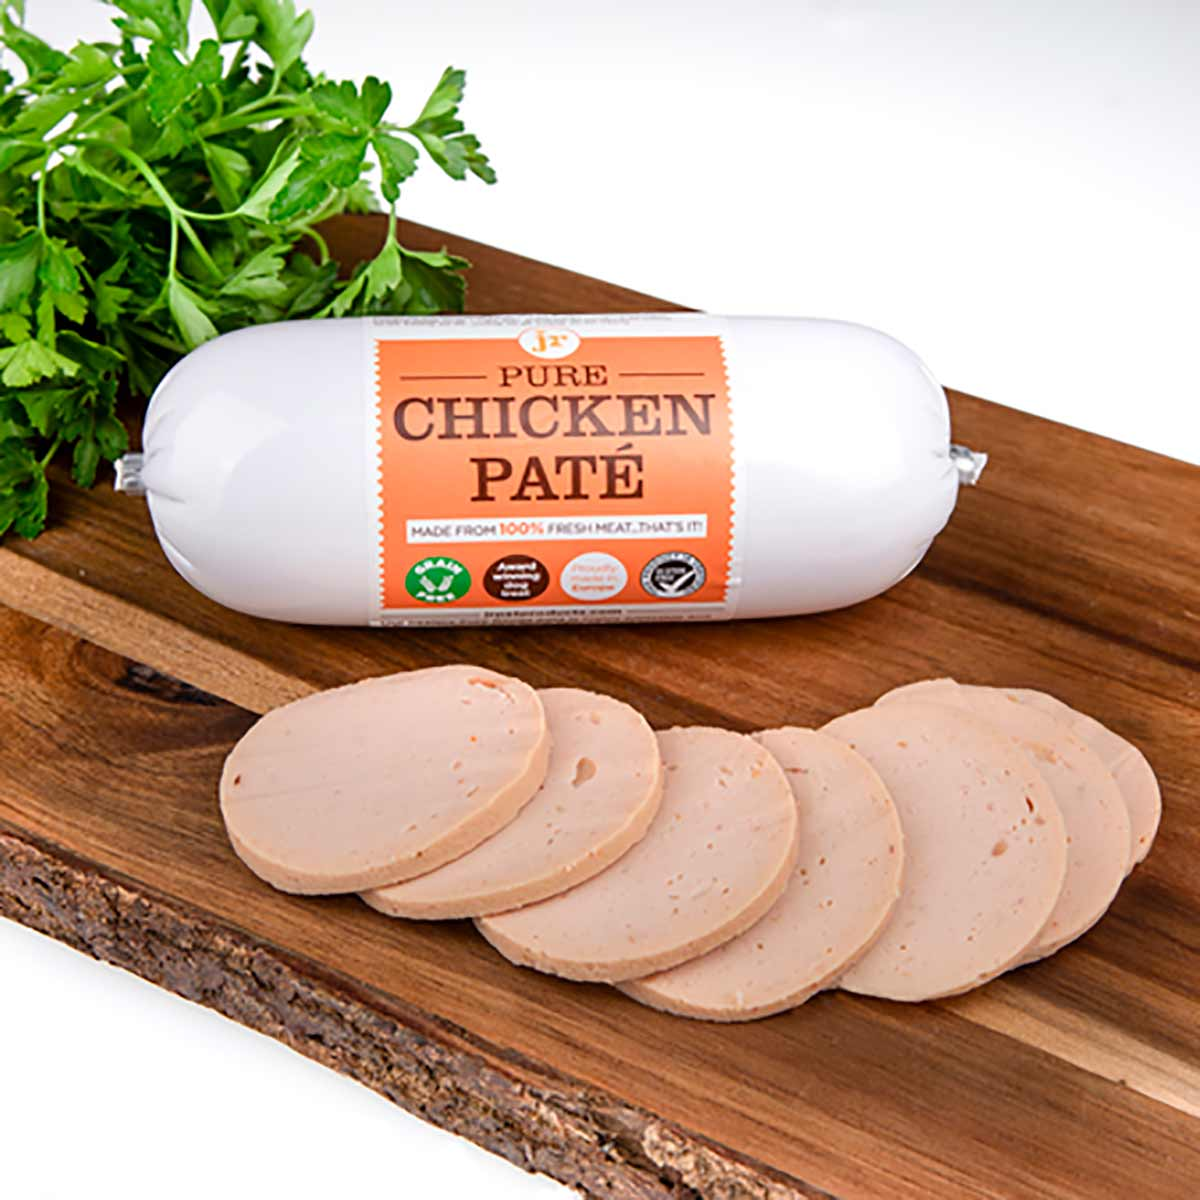 JR Pure Chicken Pate for Dogs